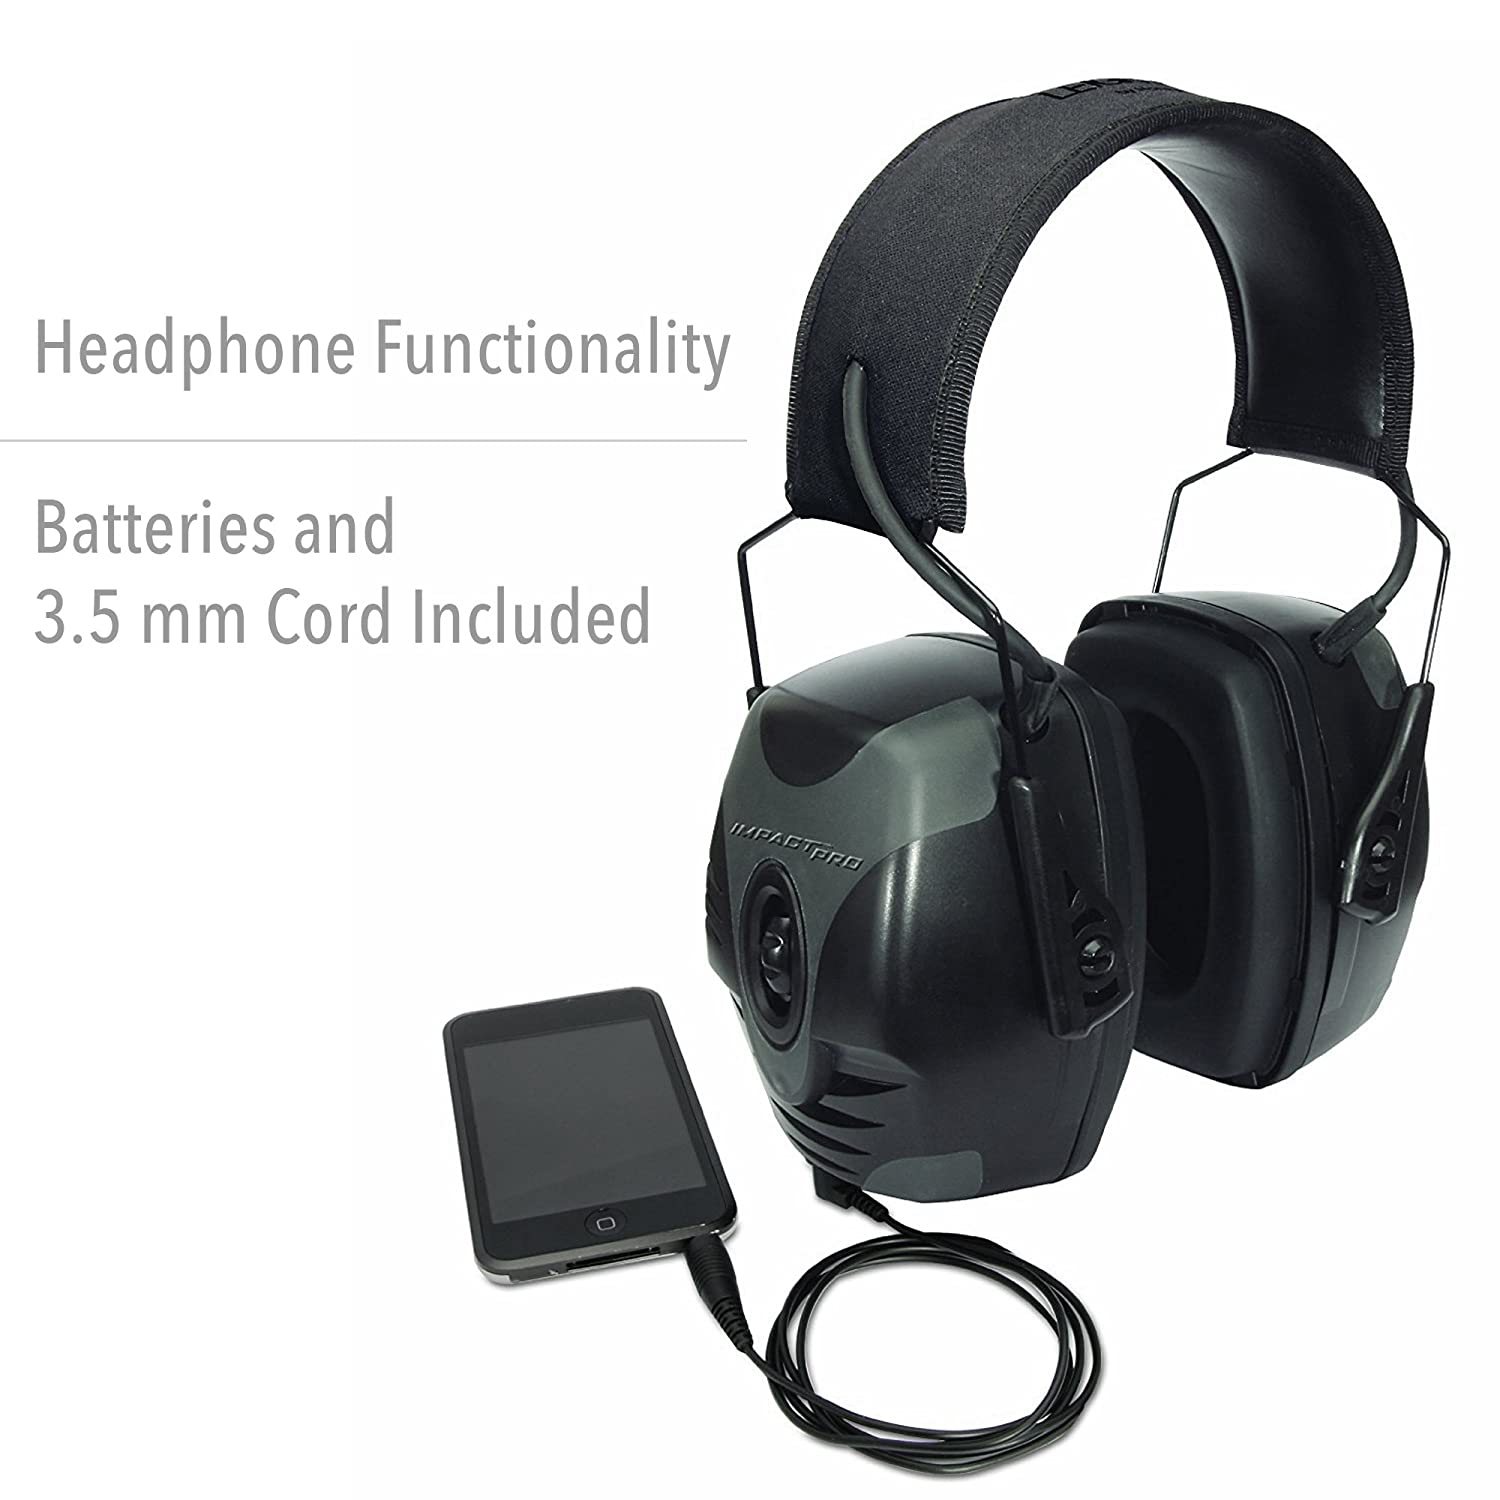 80c5d4345d6 Amazon.com: Howard Leight by Honeywell Impact Pro High Noise Reduction  Rating Sound Amplification Electronic Shooting Earmuff for Indoor and  Covered Ranges ...